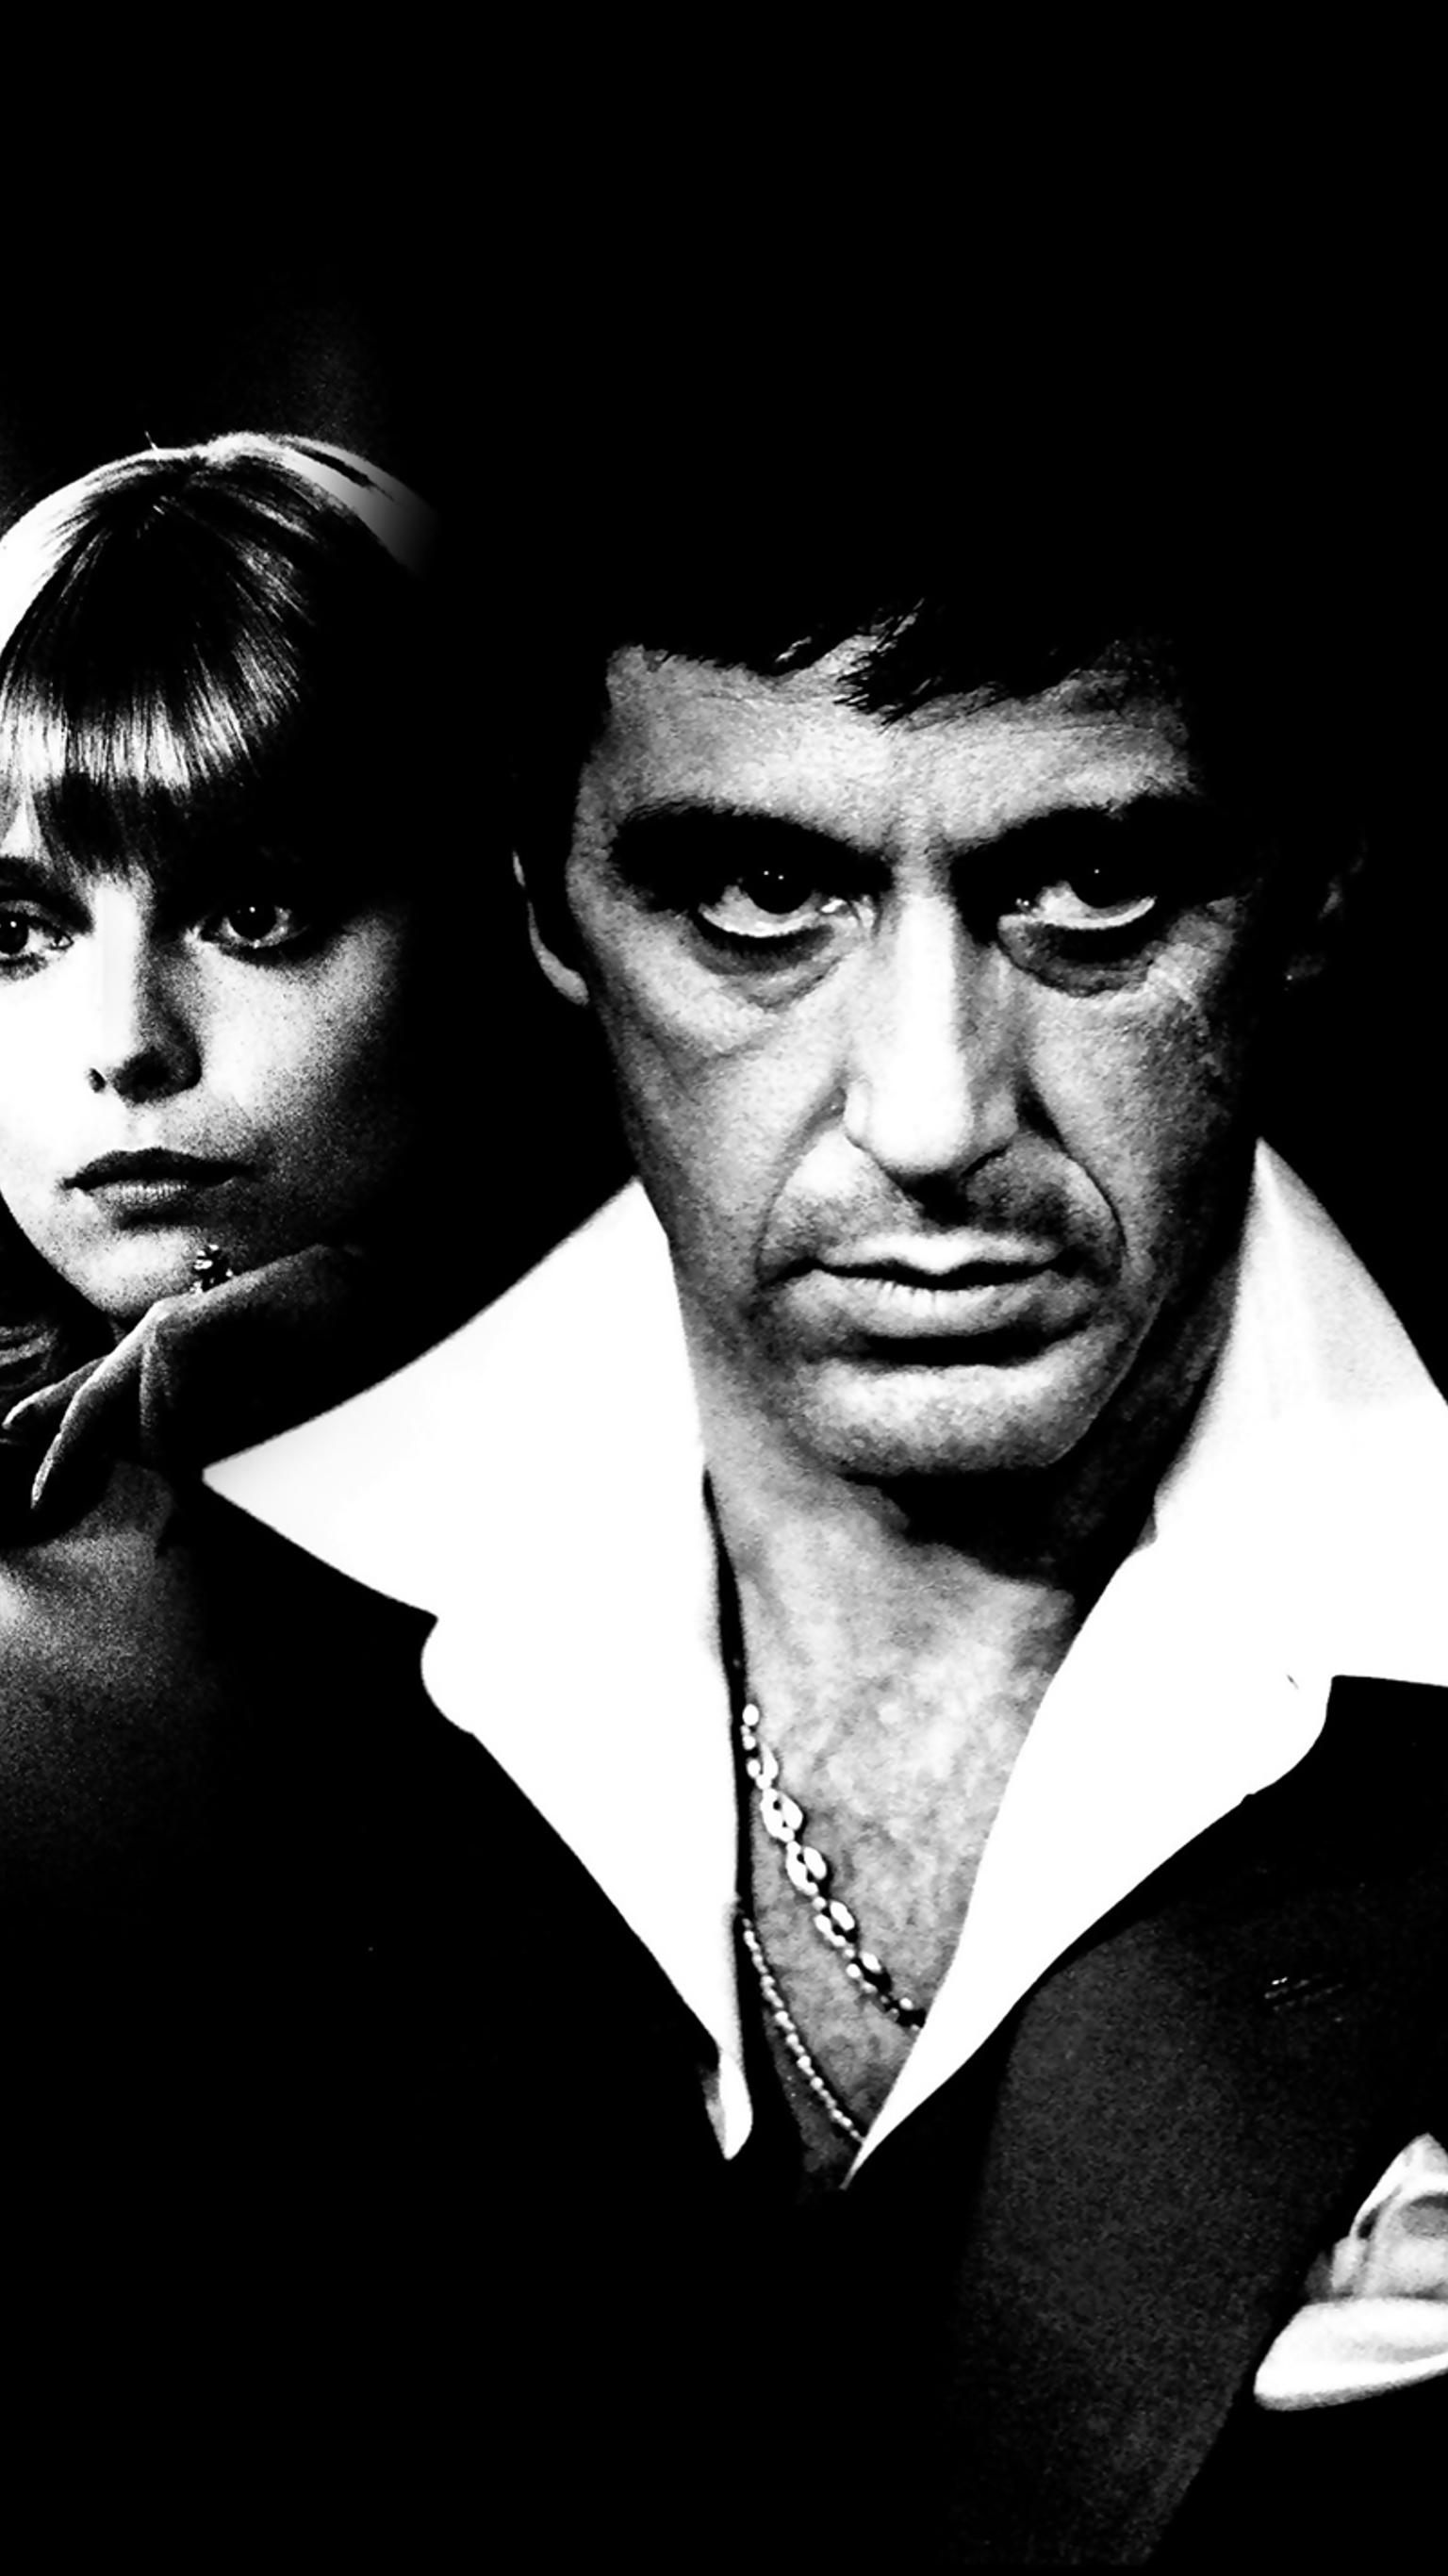 Scarface iphone wallpapers top free scarface iphone - Scarface cartoon wallpaper ...